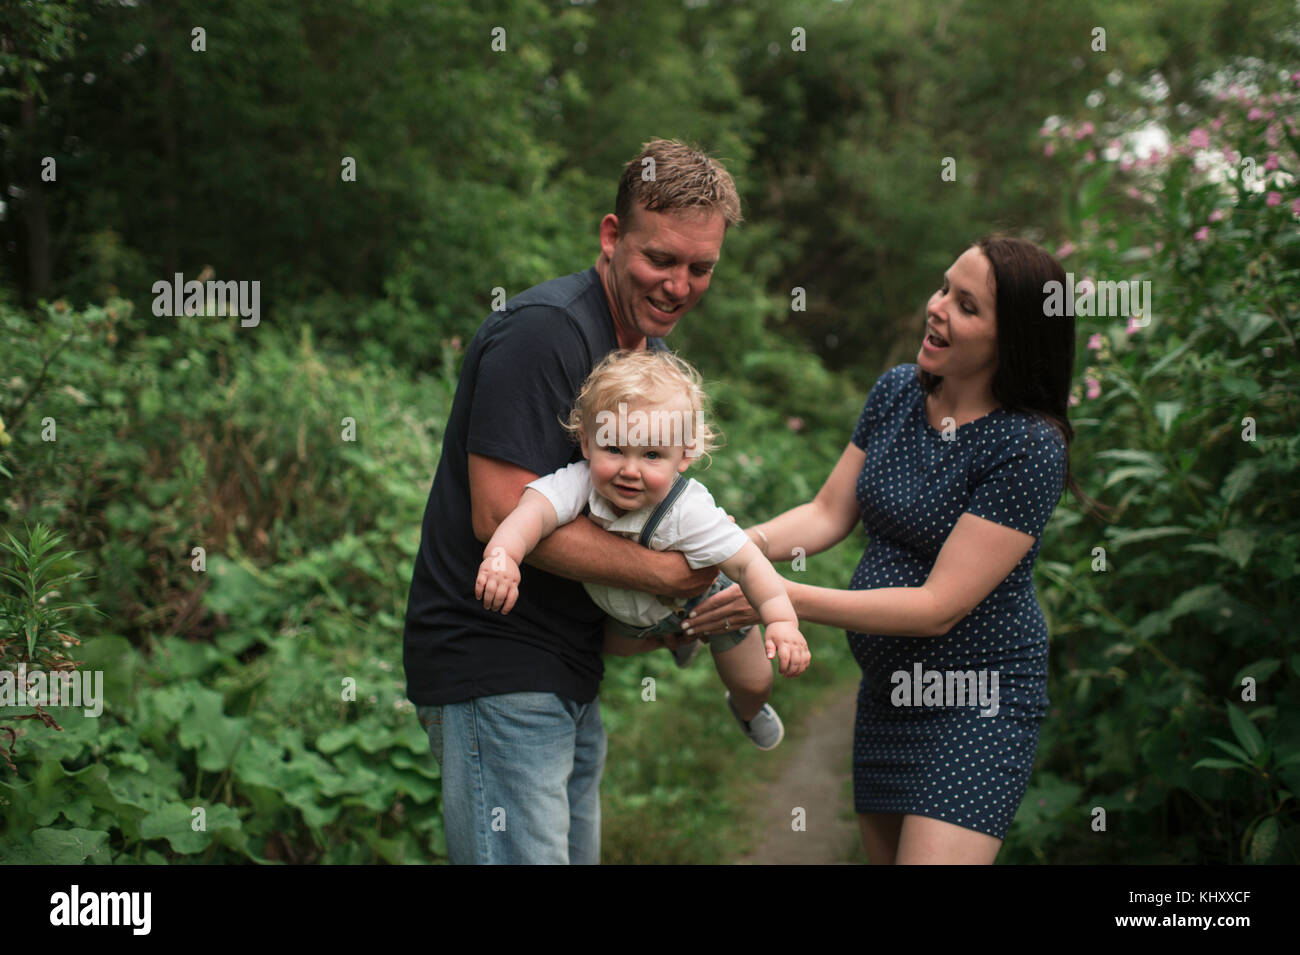 Pregnant couple swinging toddler son on pathway - Stock Image